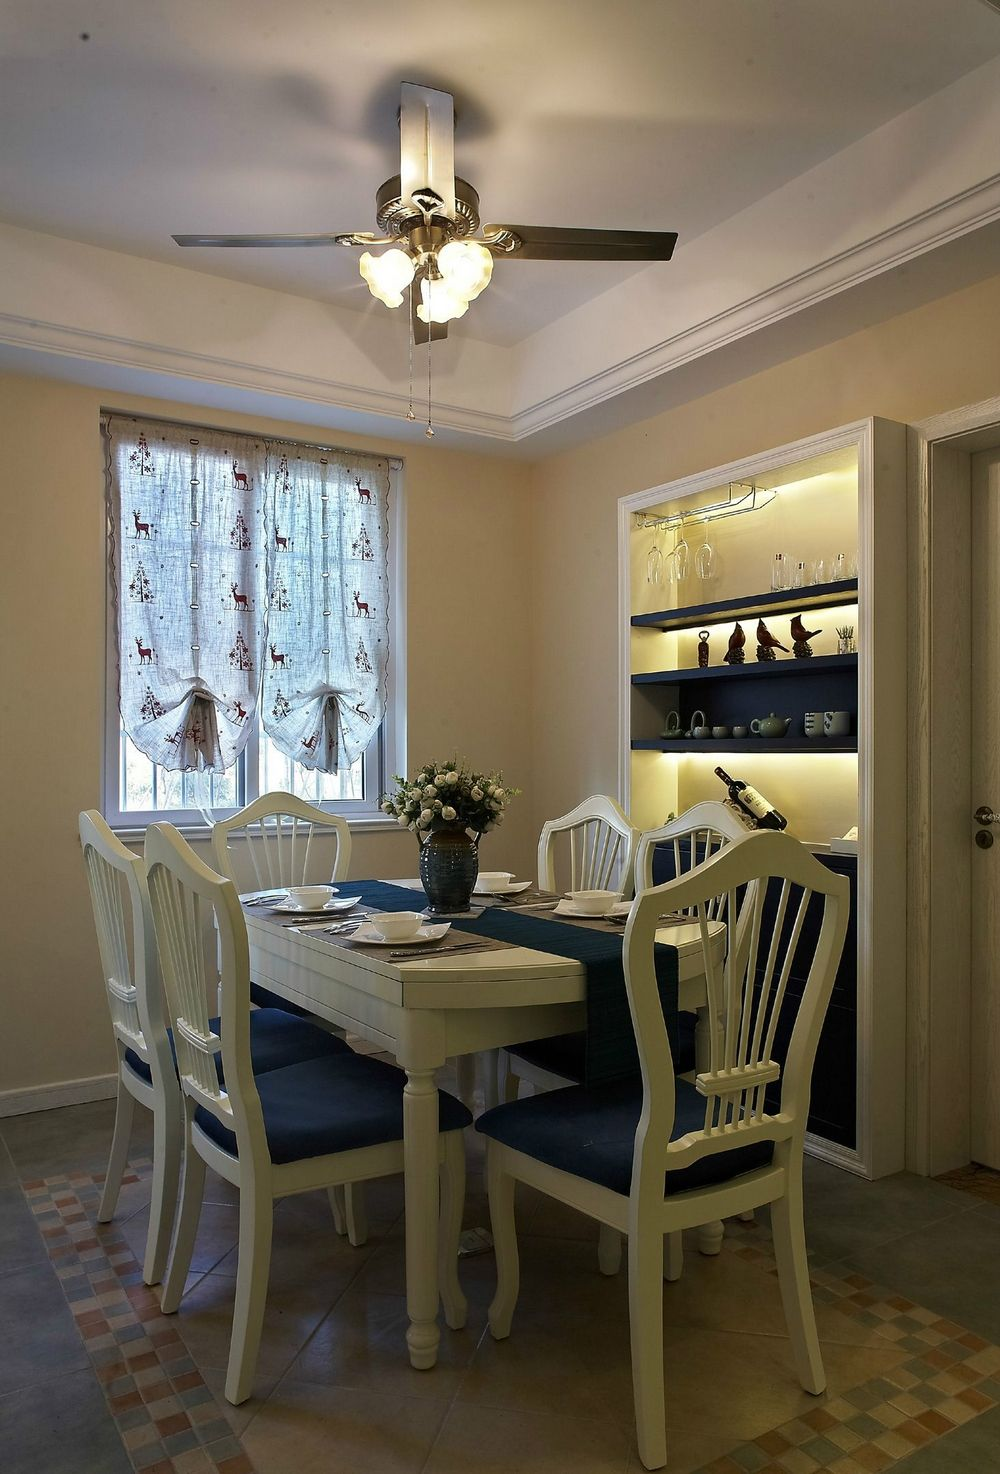 Modern american house design interior ideas also comforter sets houses and rh pinterest